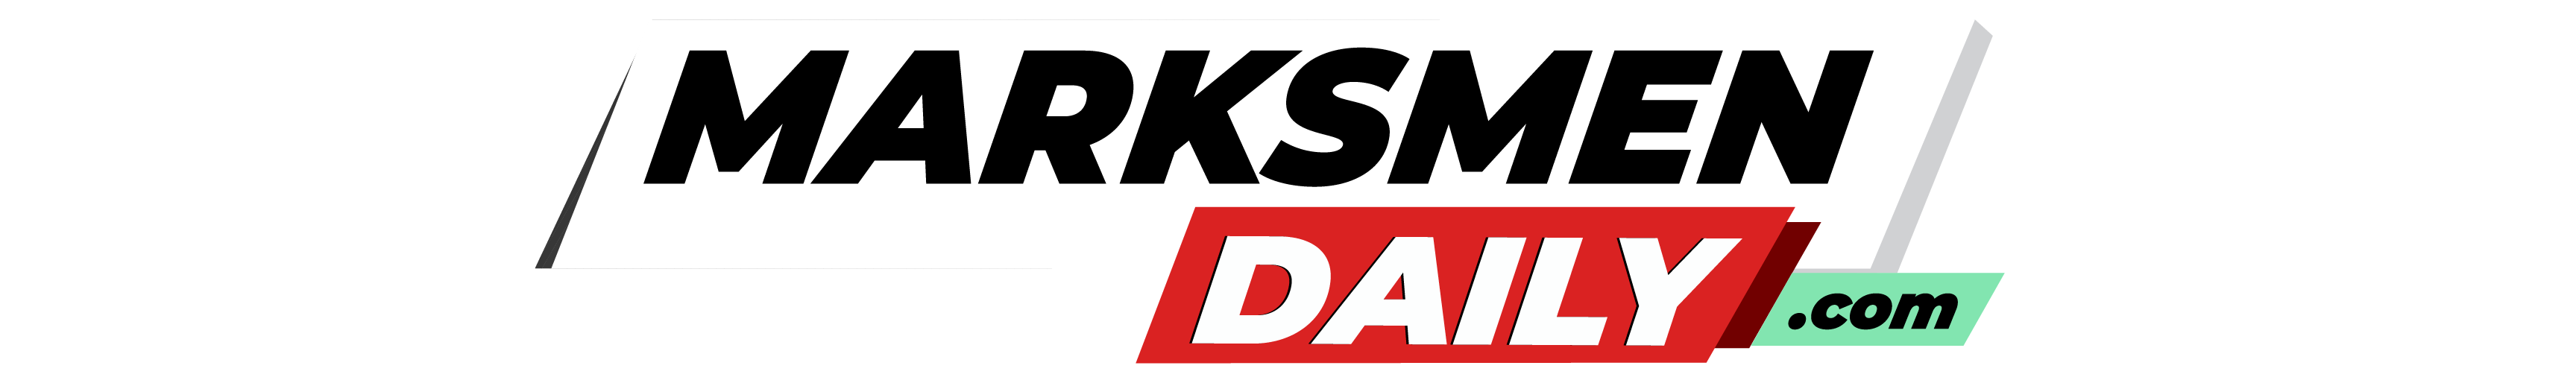 Marksmen Daily – Your daily dose of insights and inspiration